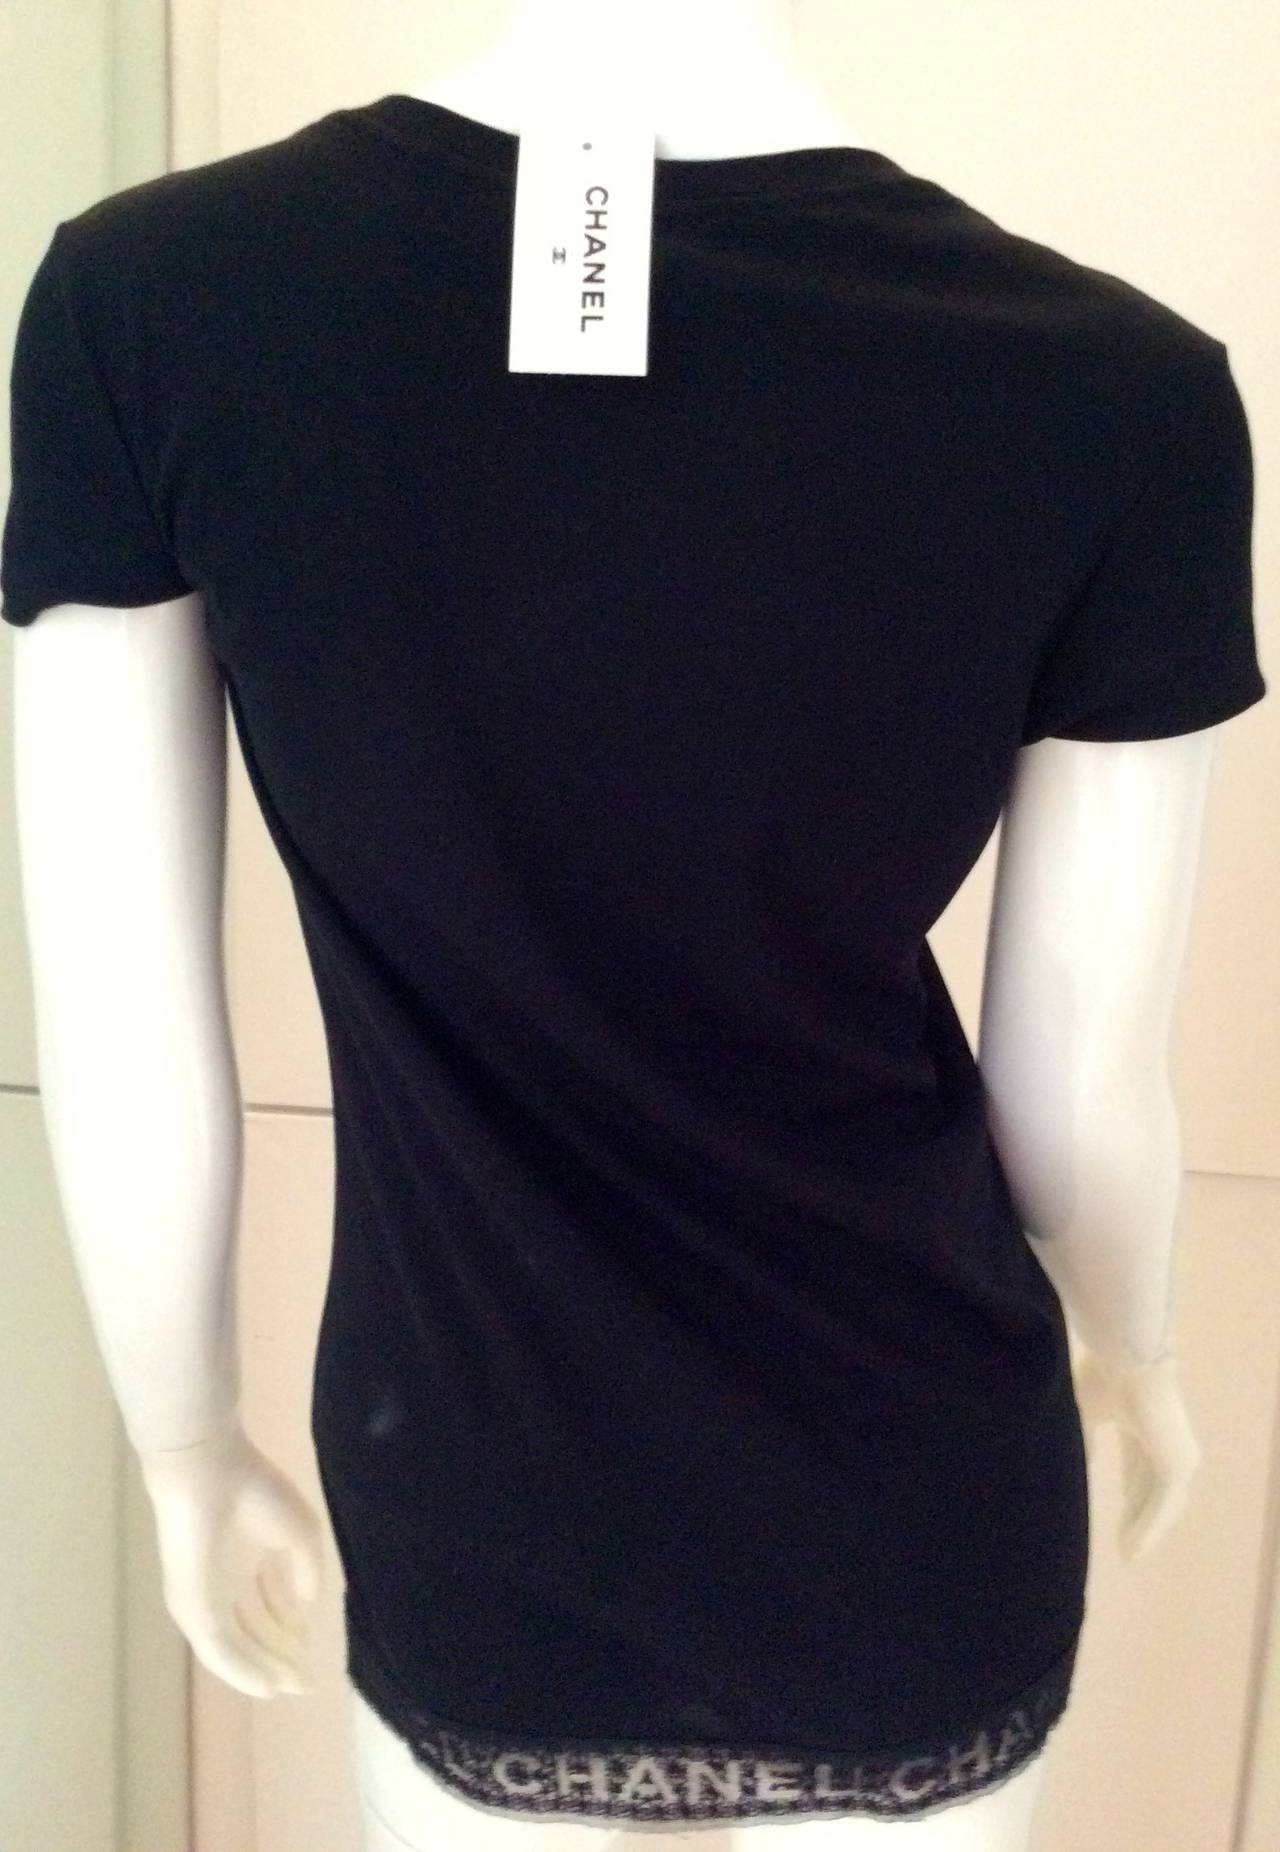 Chanel Black Tee Shirt - Size 36 2